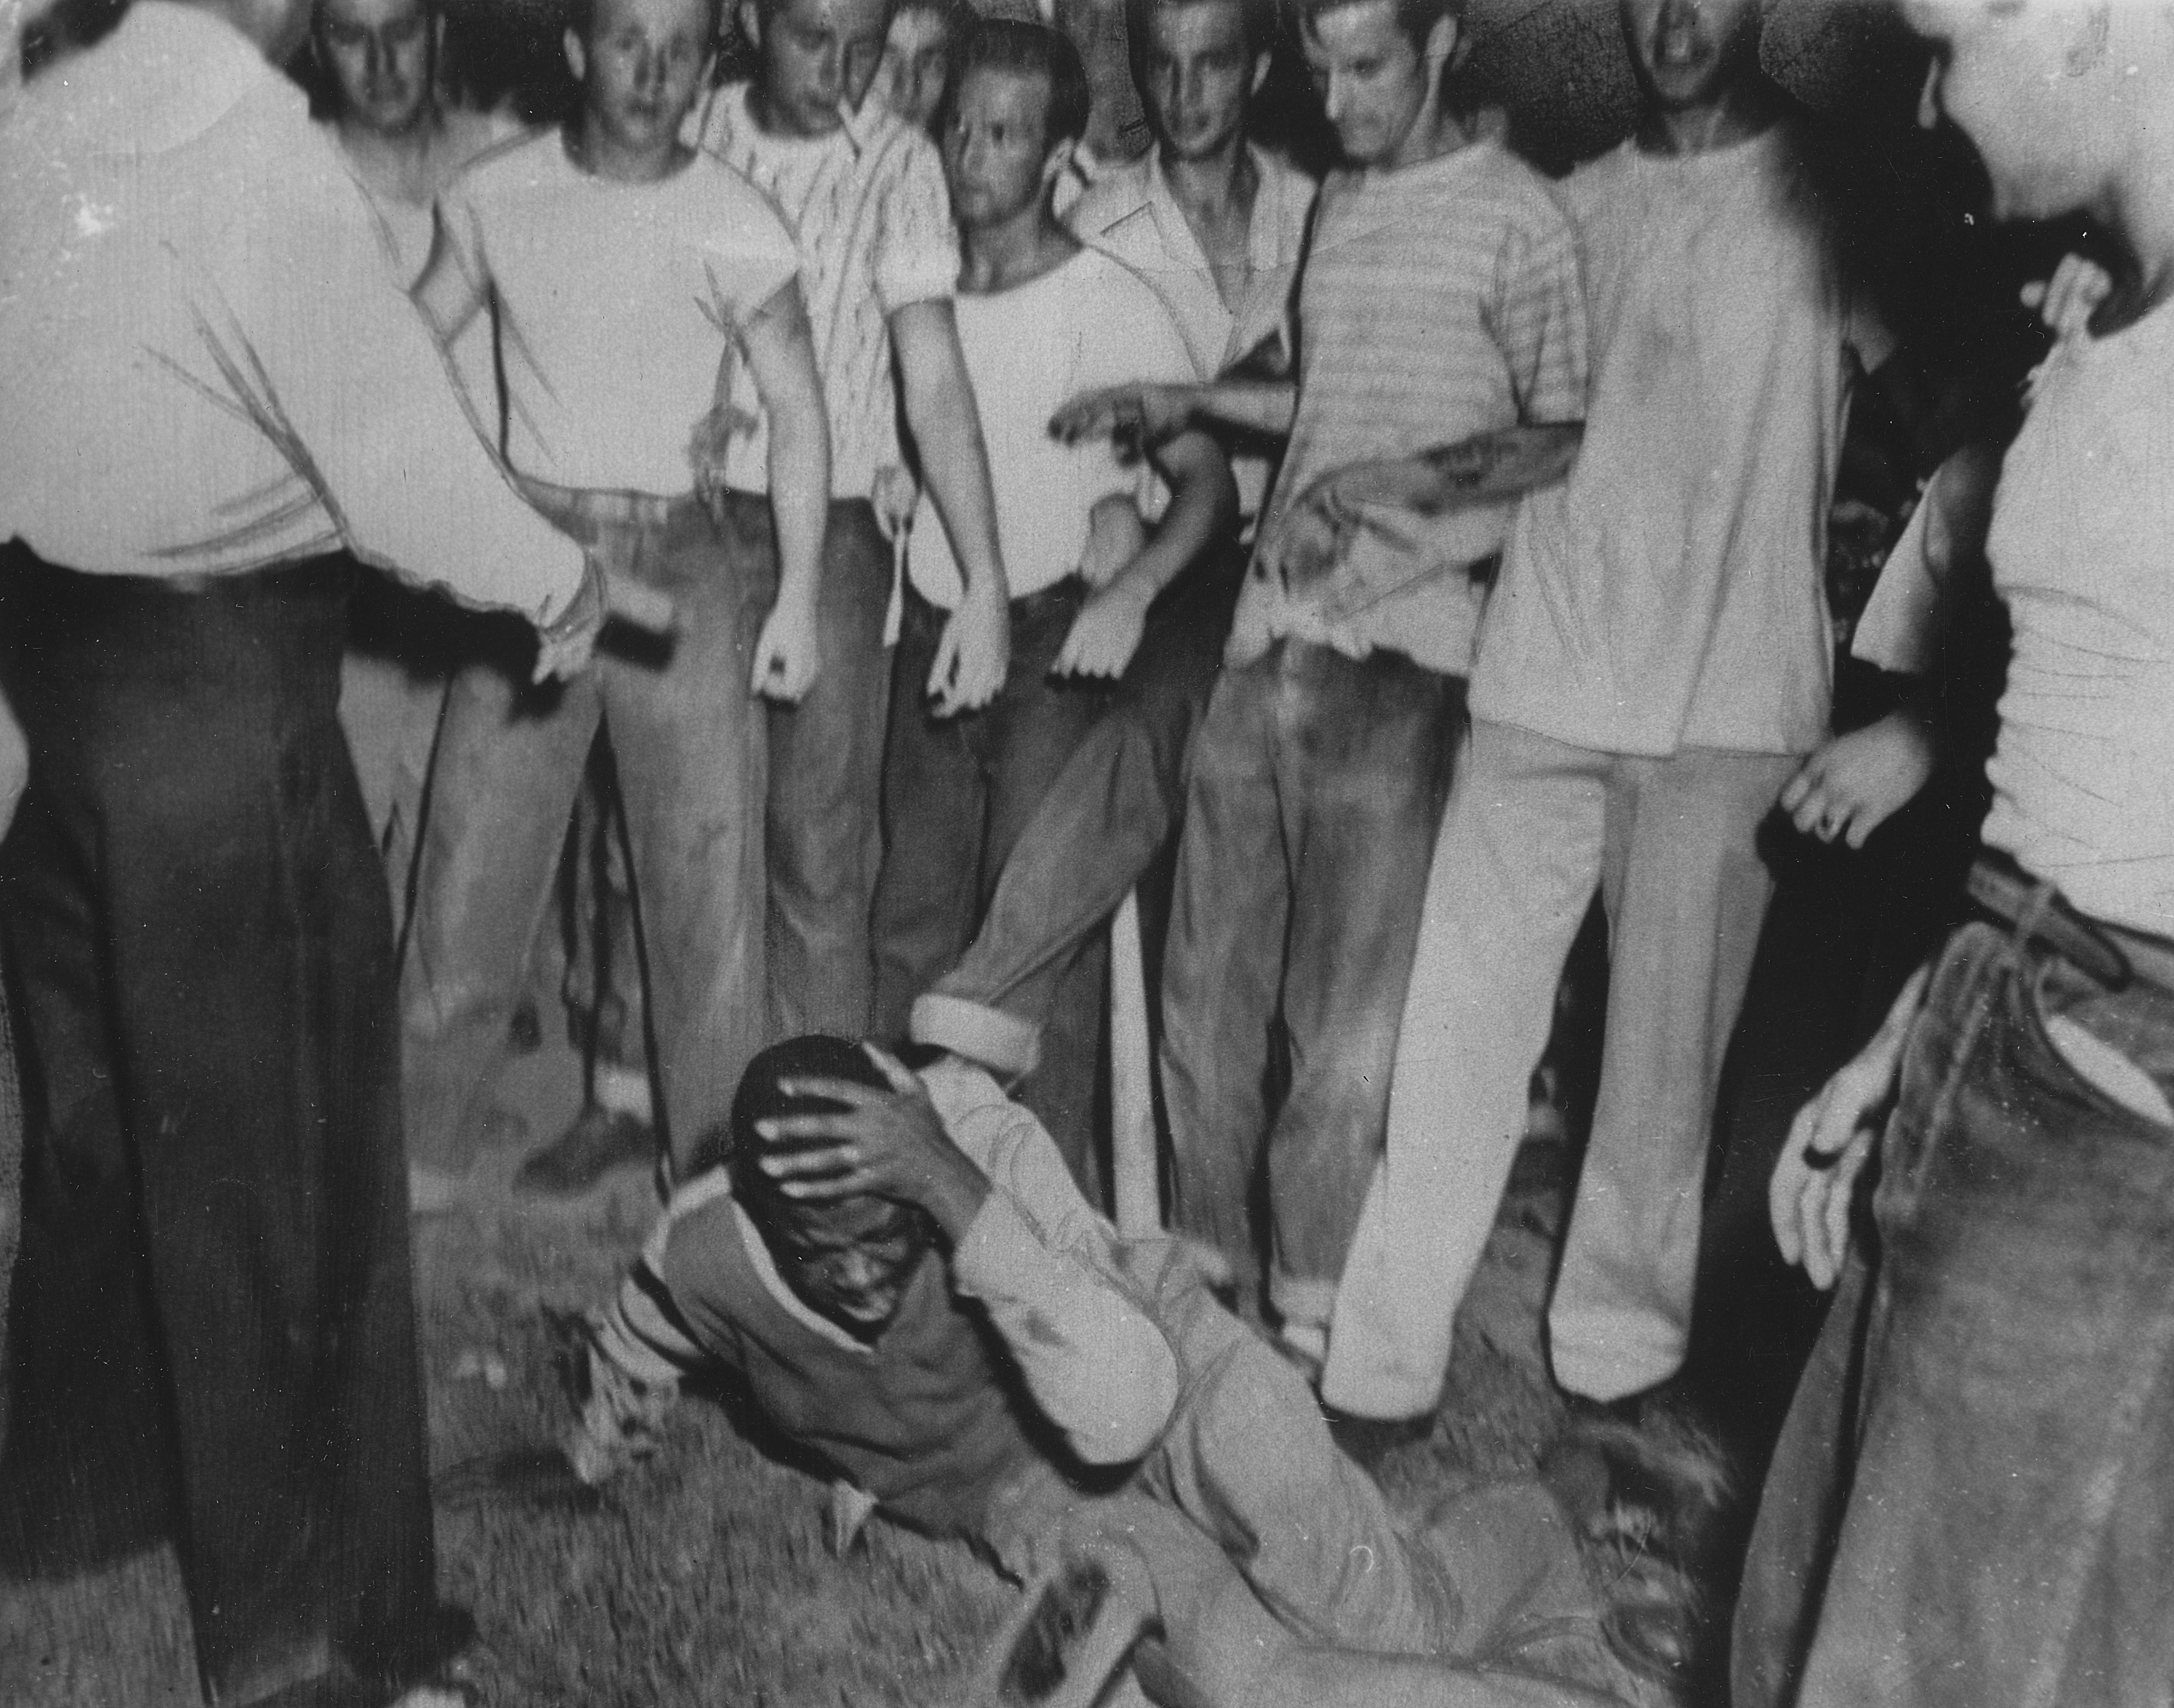 History of Torture in the United States